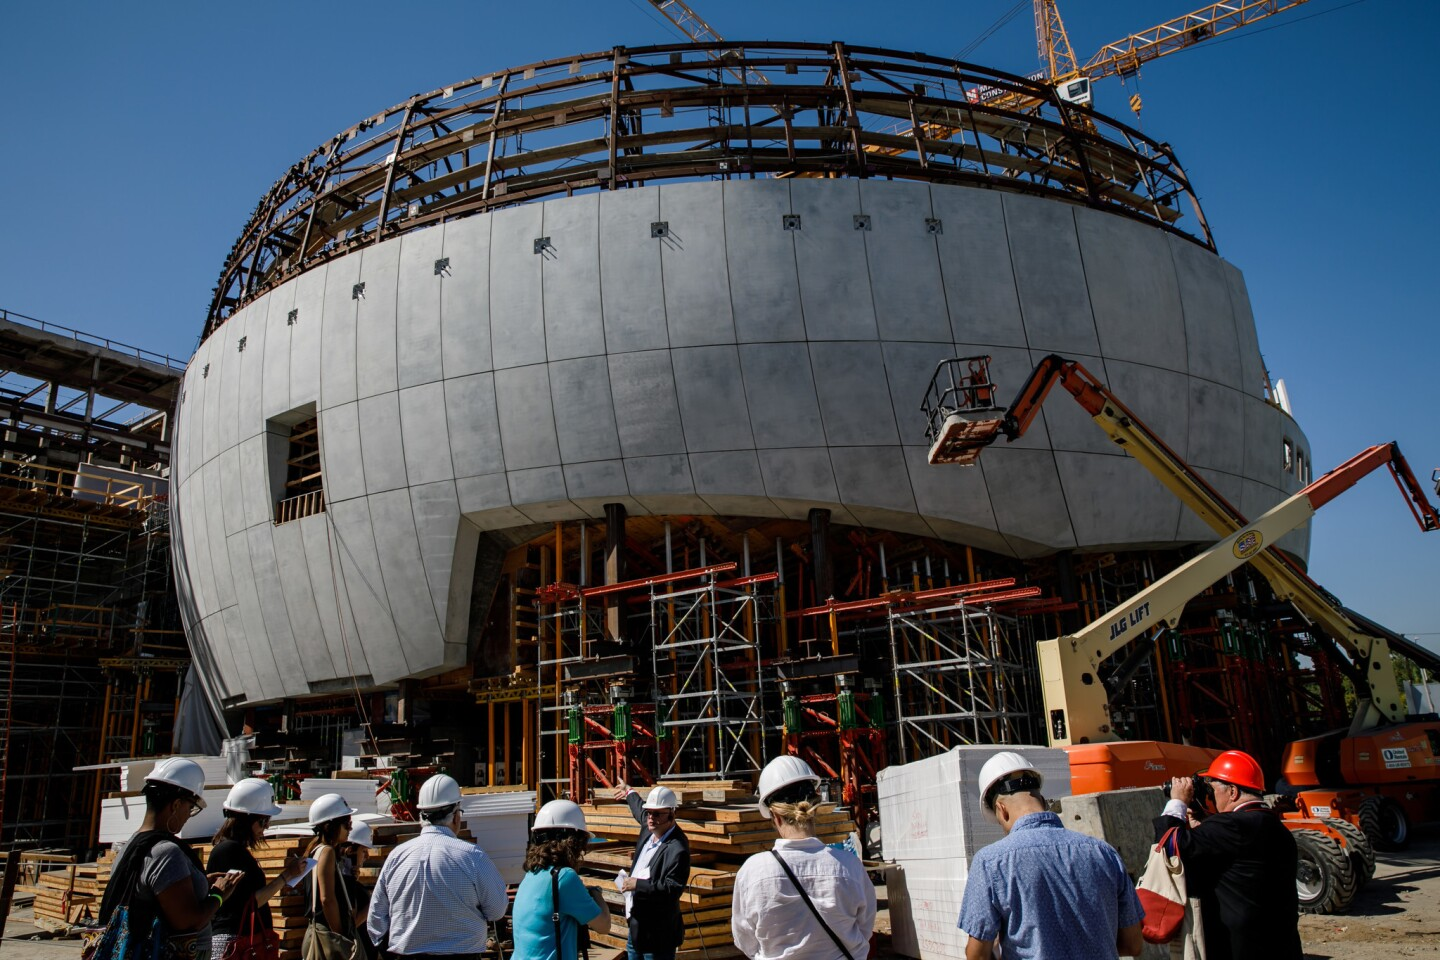 Rich Cherry leads reporters on a tour of the construction site of the Academy Museum of Motion Pictures in Los Angeles on Sept. 27, 2017.